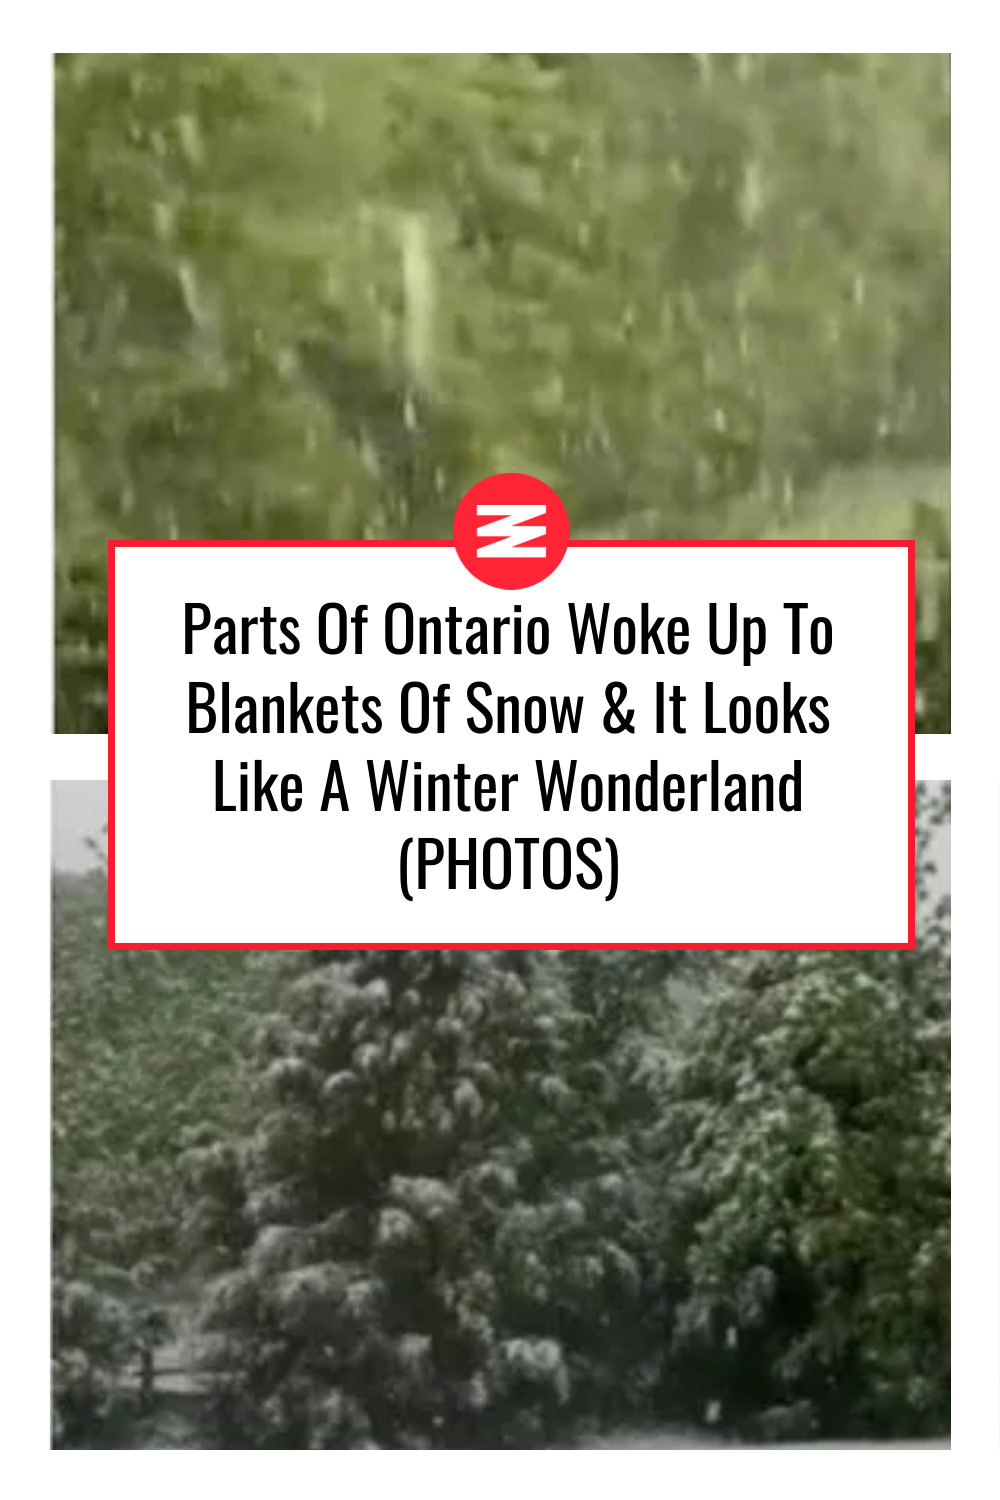 Parts Of Ontario Woke Up To Blankets Of Snow It Looks Like A Winter Wonderland Photos In 2021